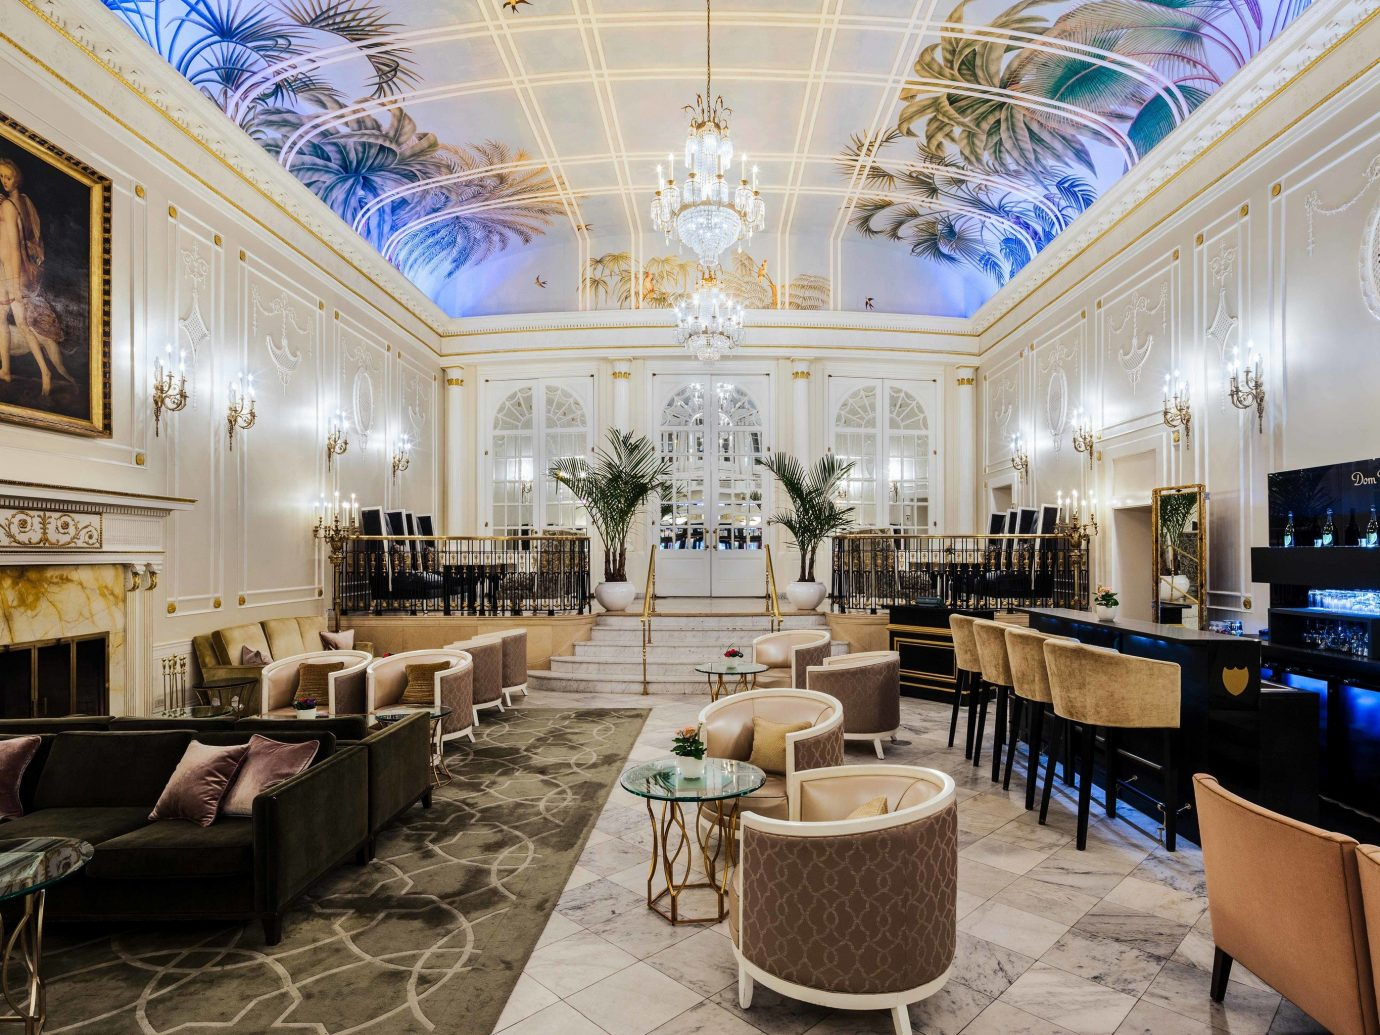 Canada Hotels Montreal Trip Ideas indoor chair interior design Lobby room ceiling function hall restaurant estate furniture decorated several dining room